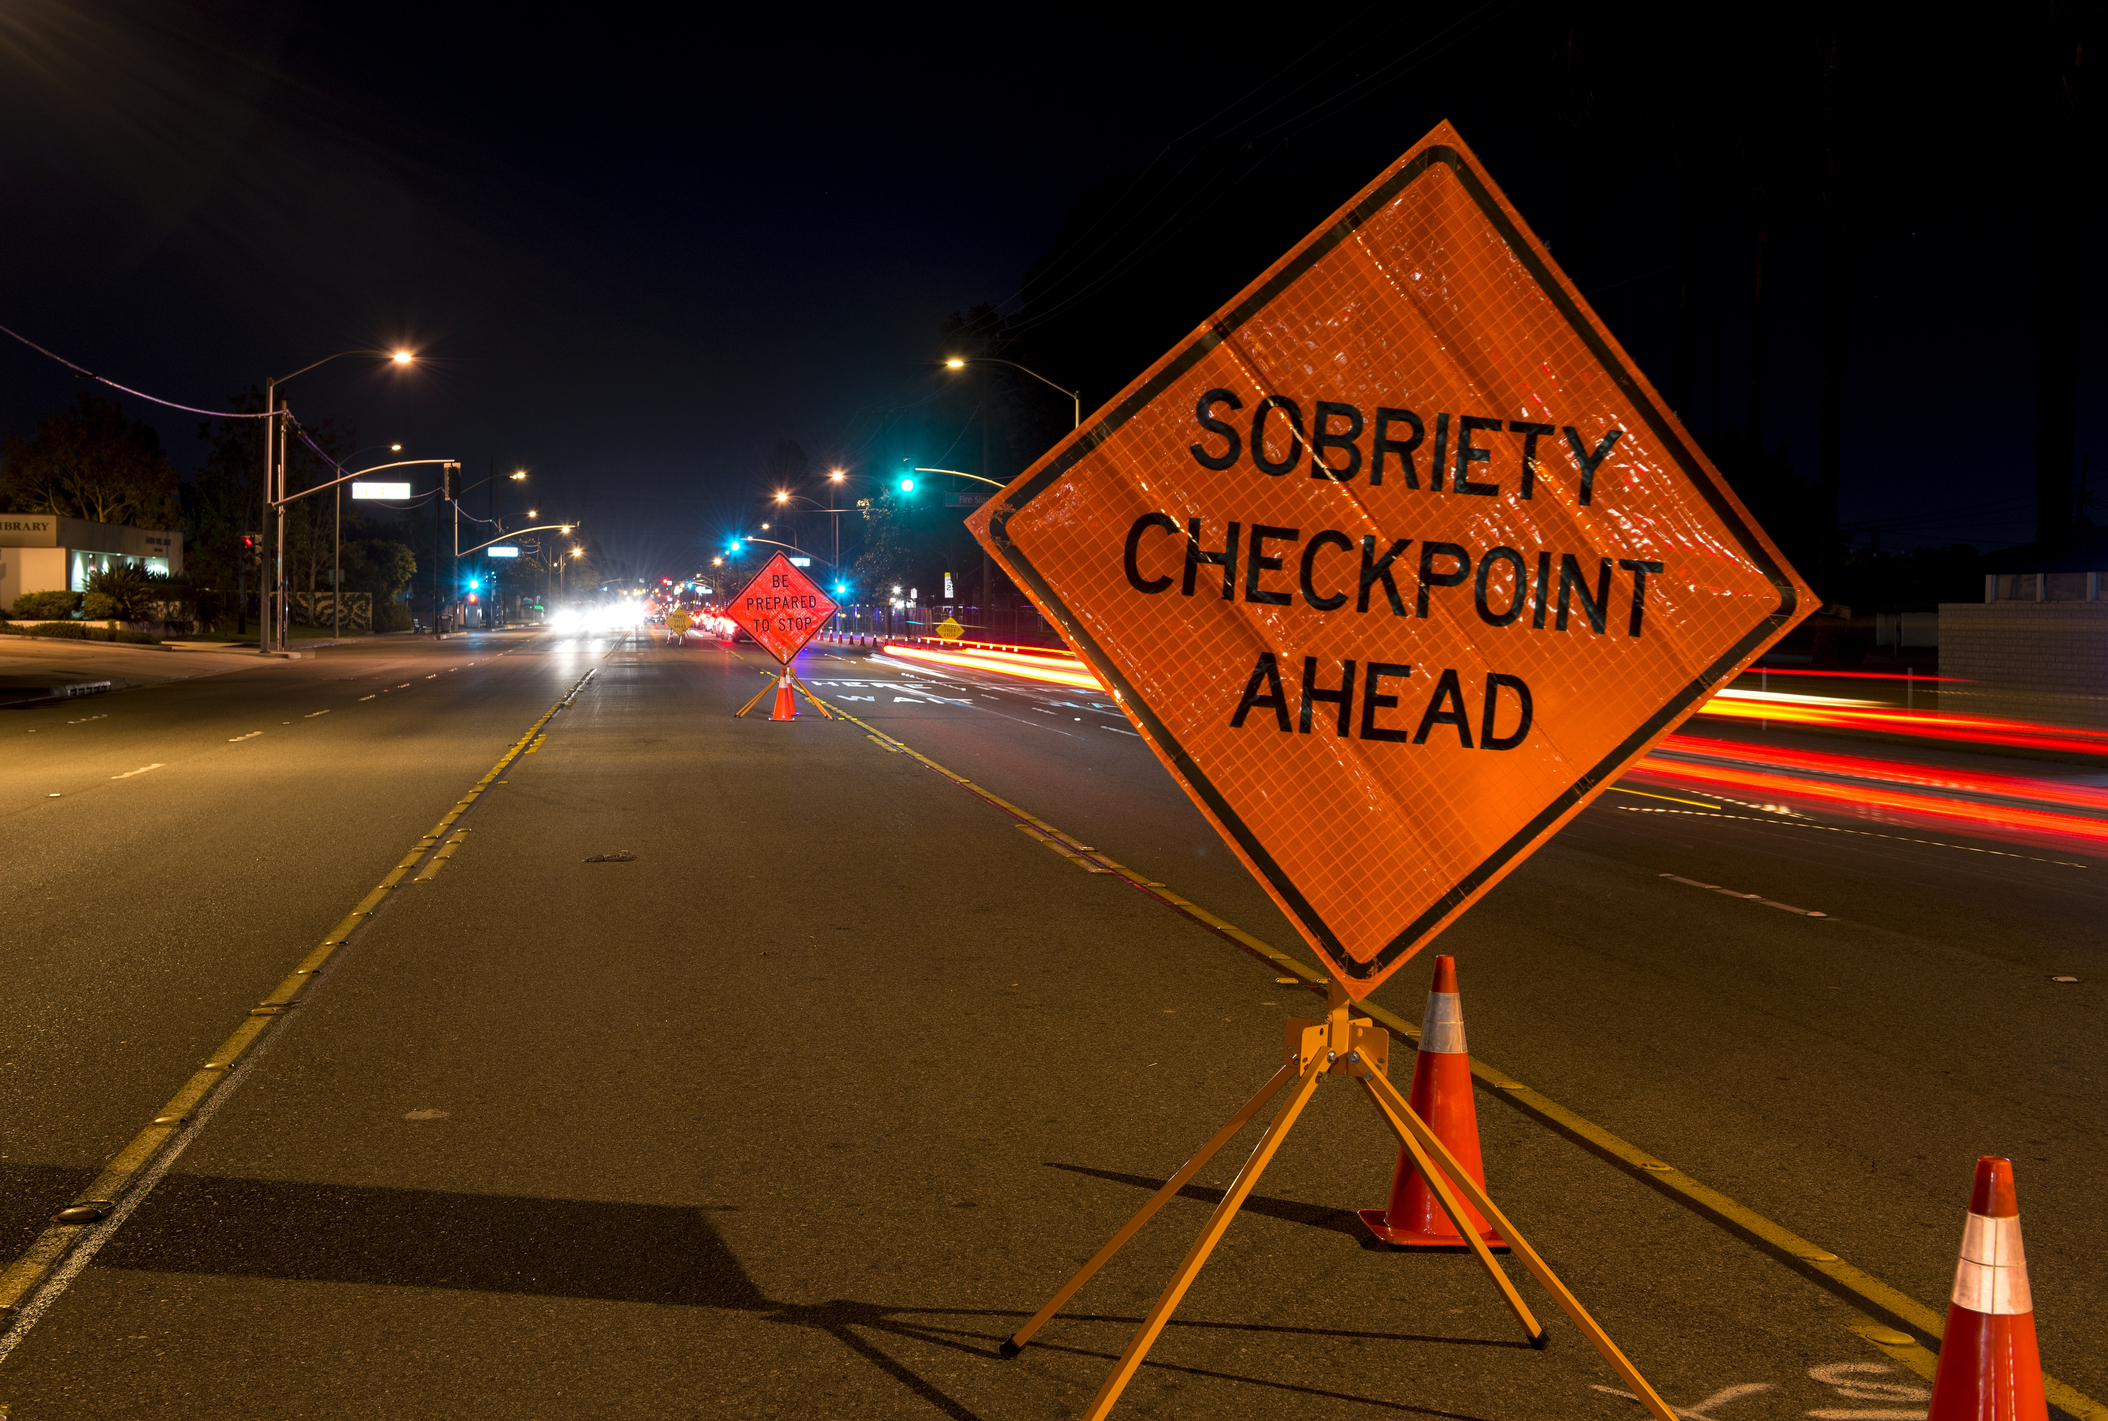 Sobriety checkpoint ahead.jpg